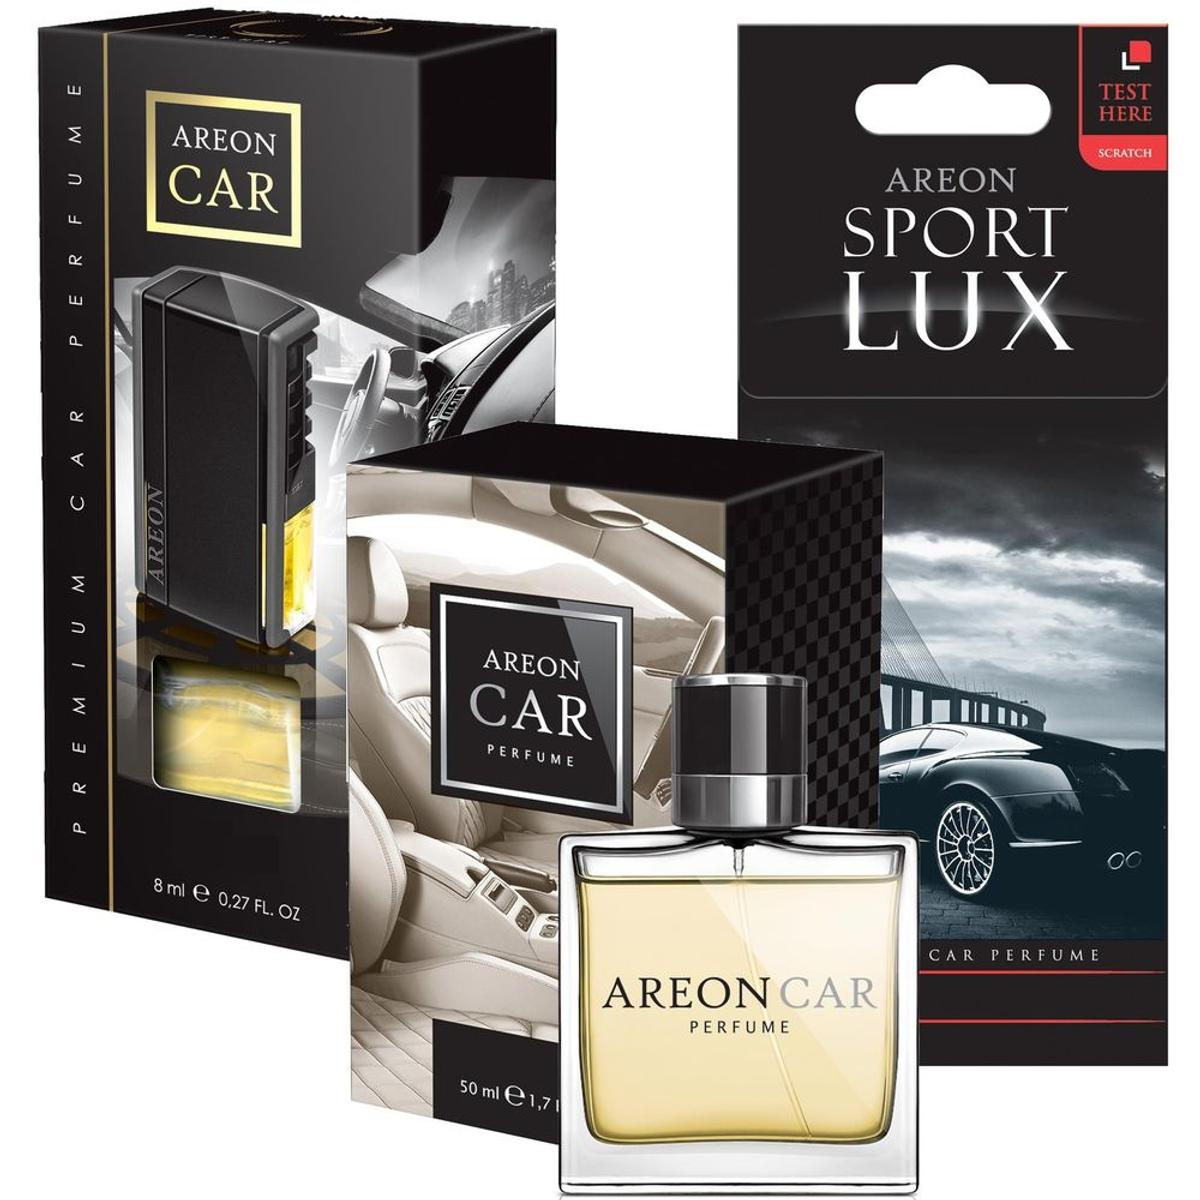 Air Freshener Areon Lux Auto Perfume Car In Pe21 Boston For 400